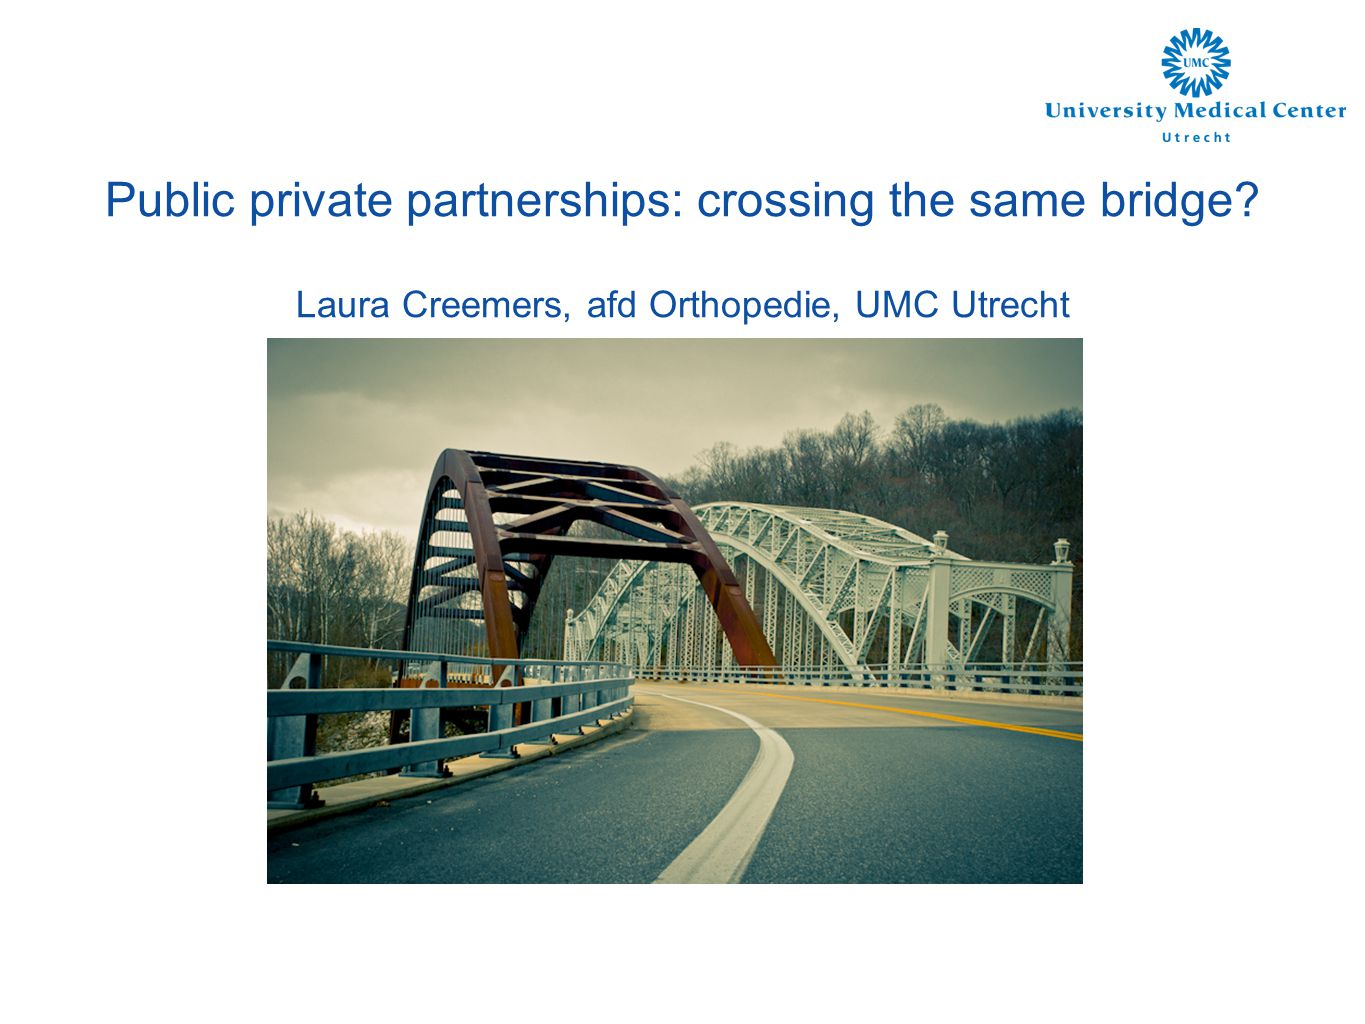 Public private partnerships: crossing the same bridge Laura Creemers, afd Orthopedie, UMC Utrecht